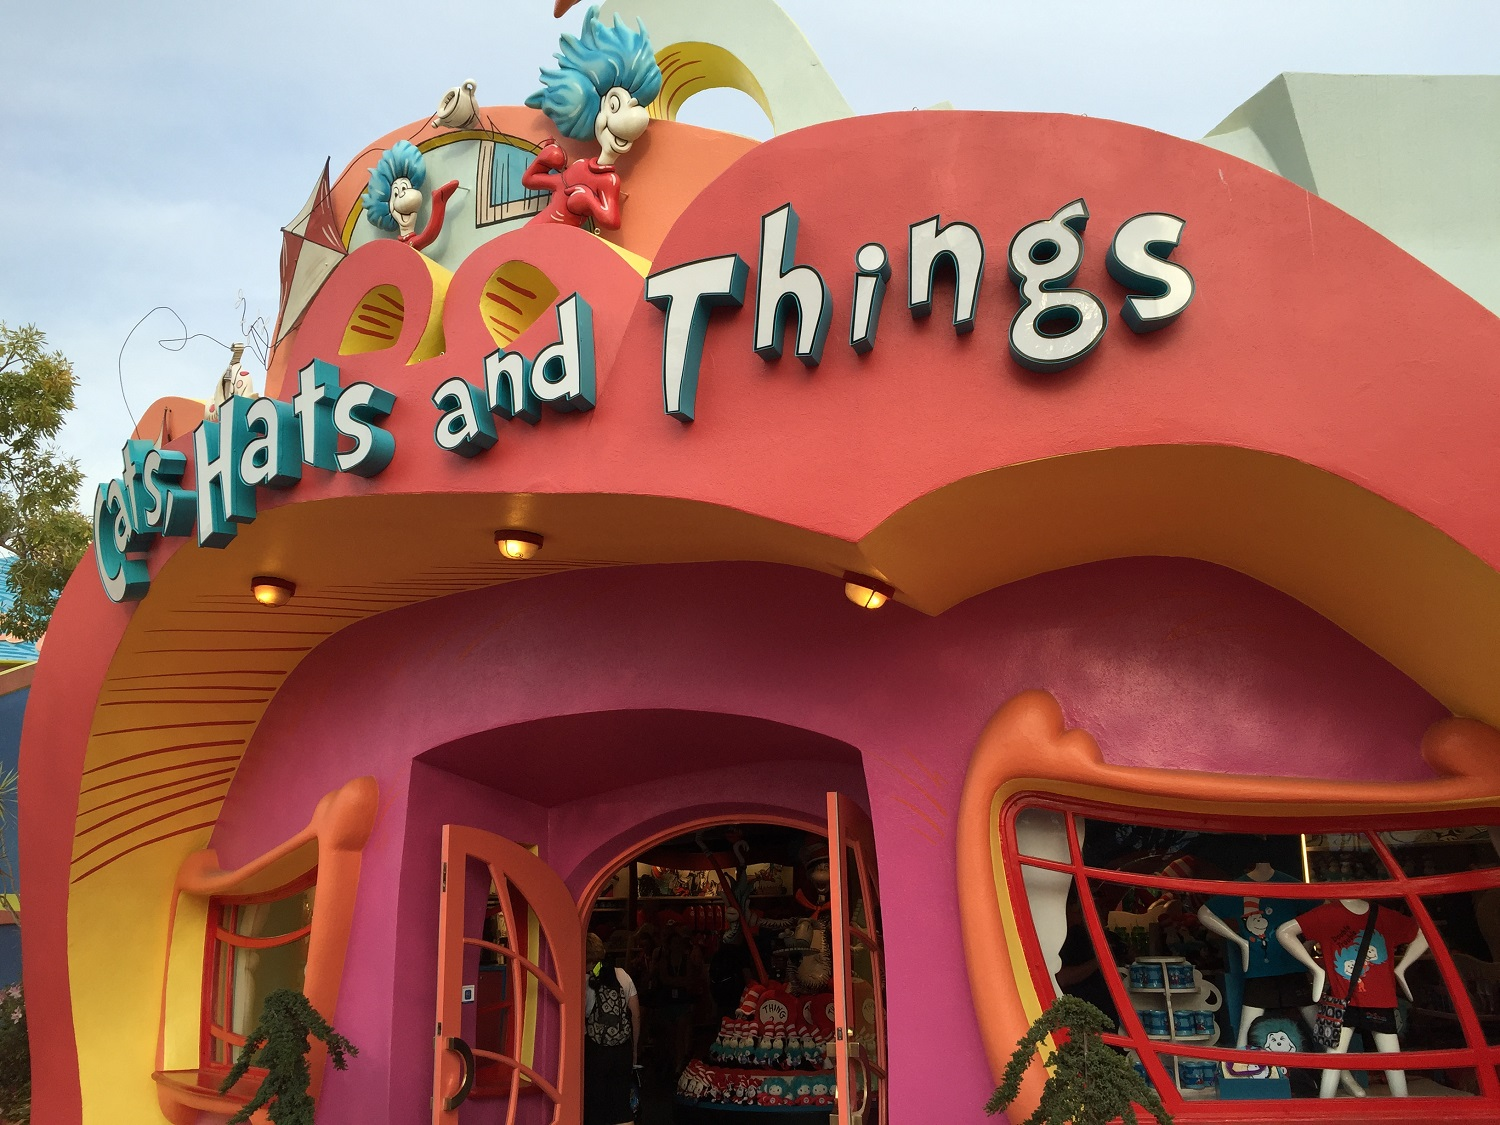 You can visit the Cats, Hats and Things store after riding The Cat in the Hat.